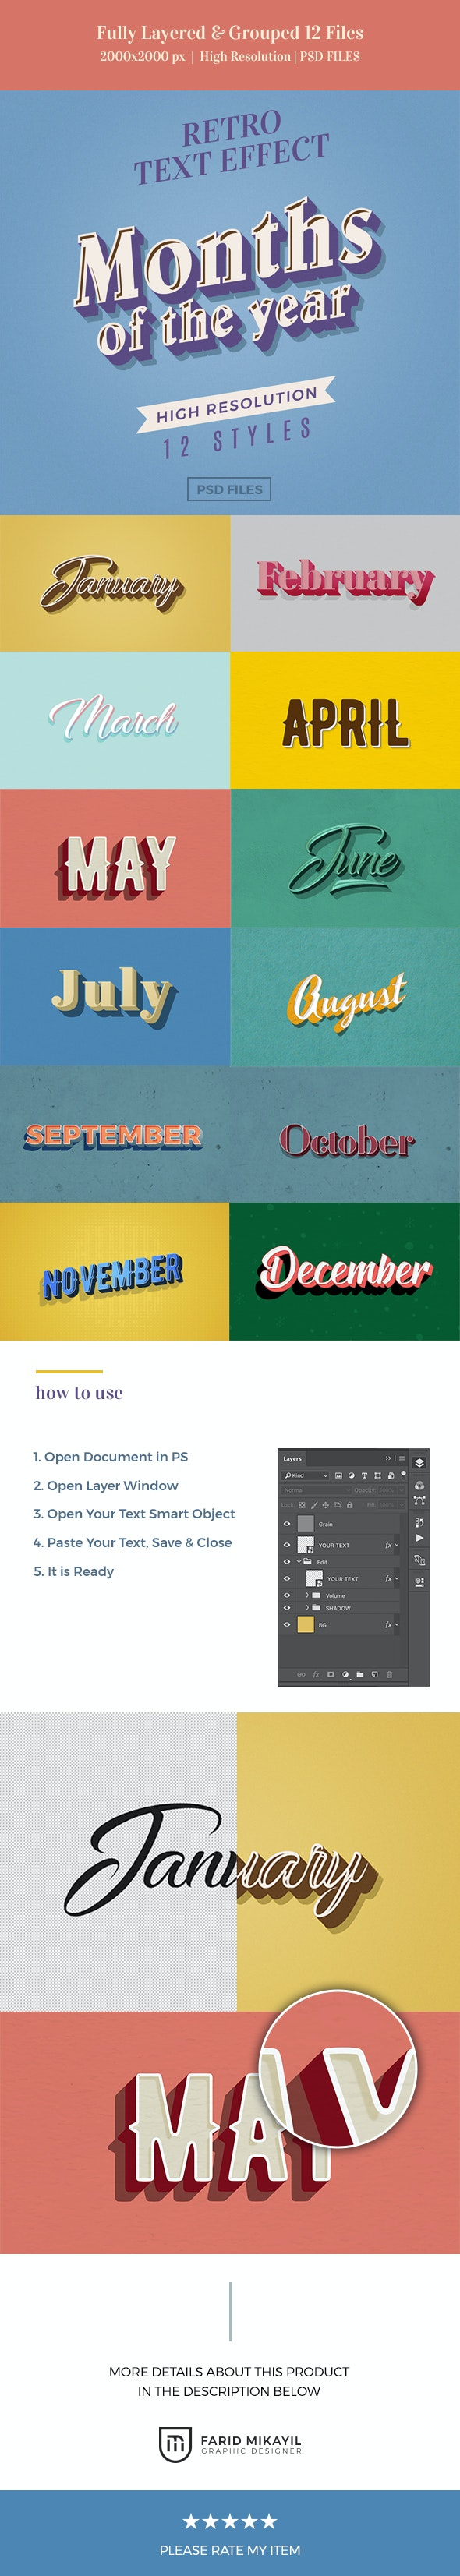 Months of the Year Retro Text Effects - Text Effects Actions